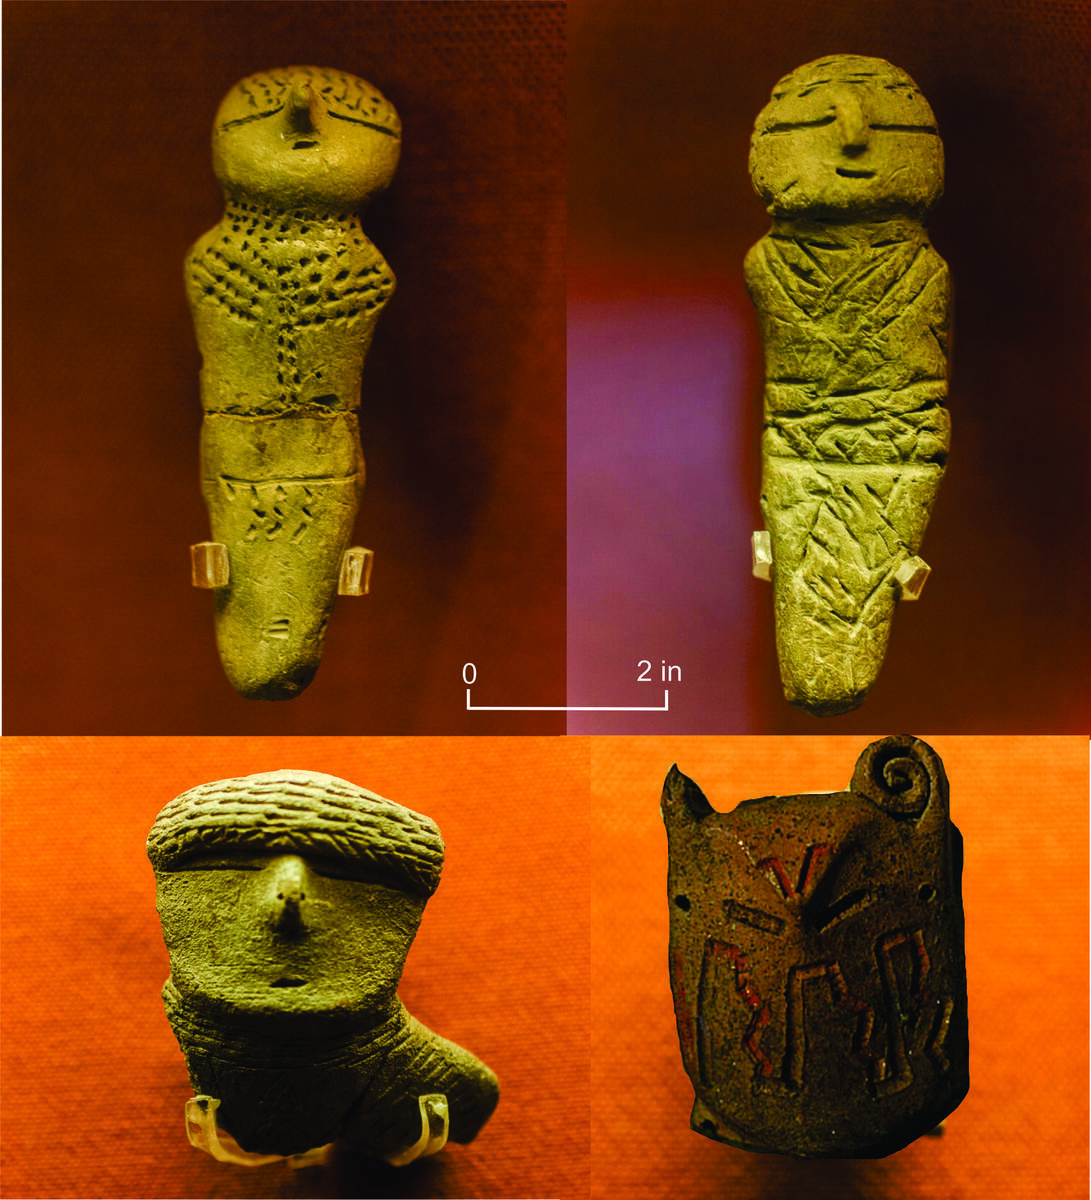 four ceramic figurines, eyes horizontal slits, pointed noses, embossed designs